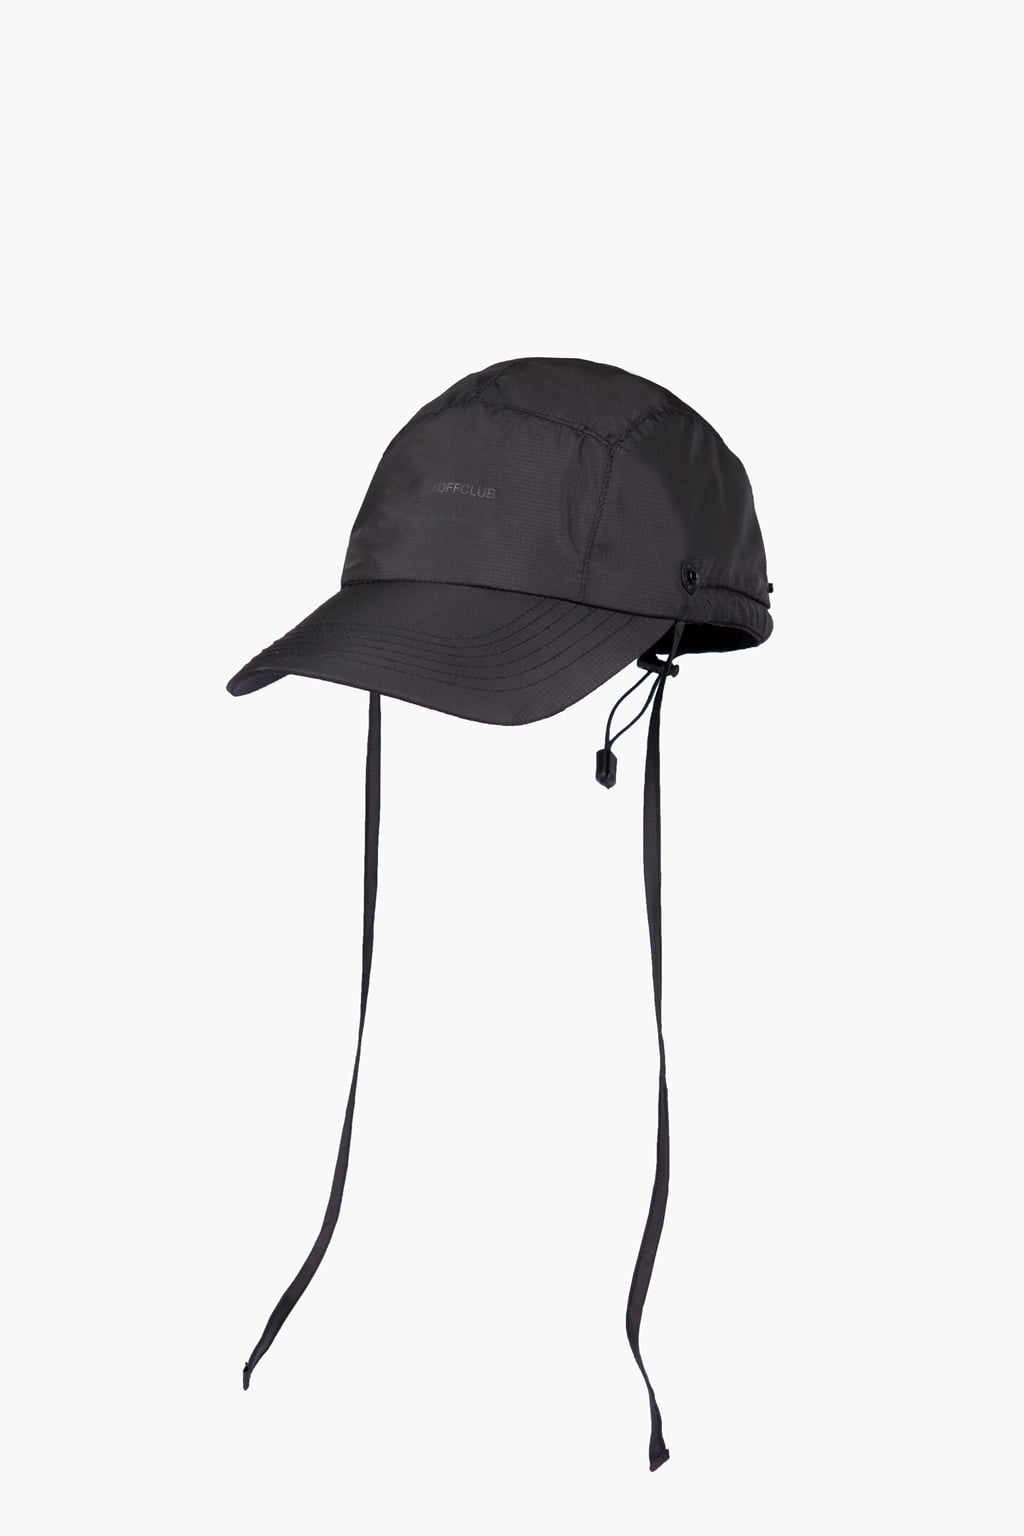 3-in-1 Desert Cap - black